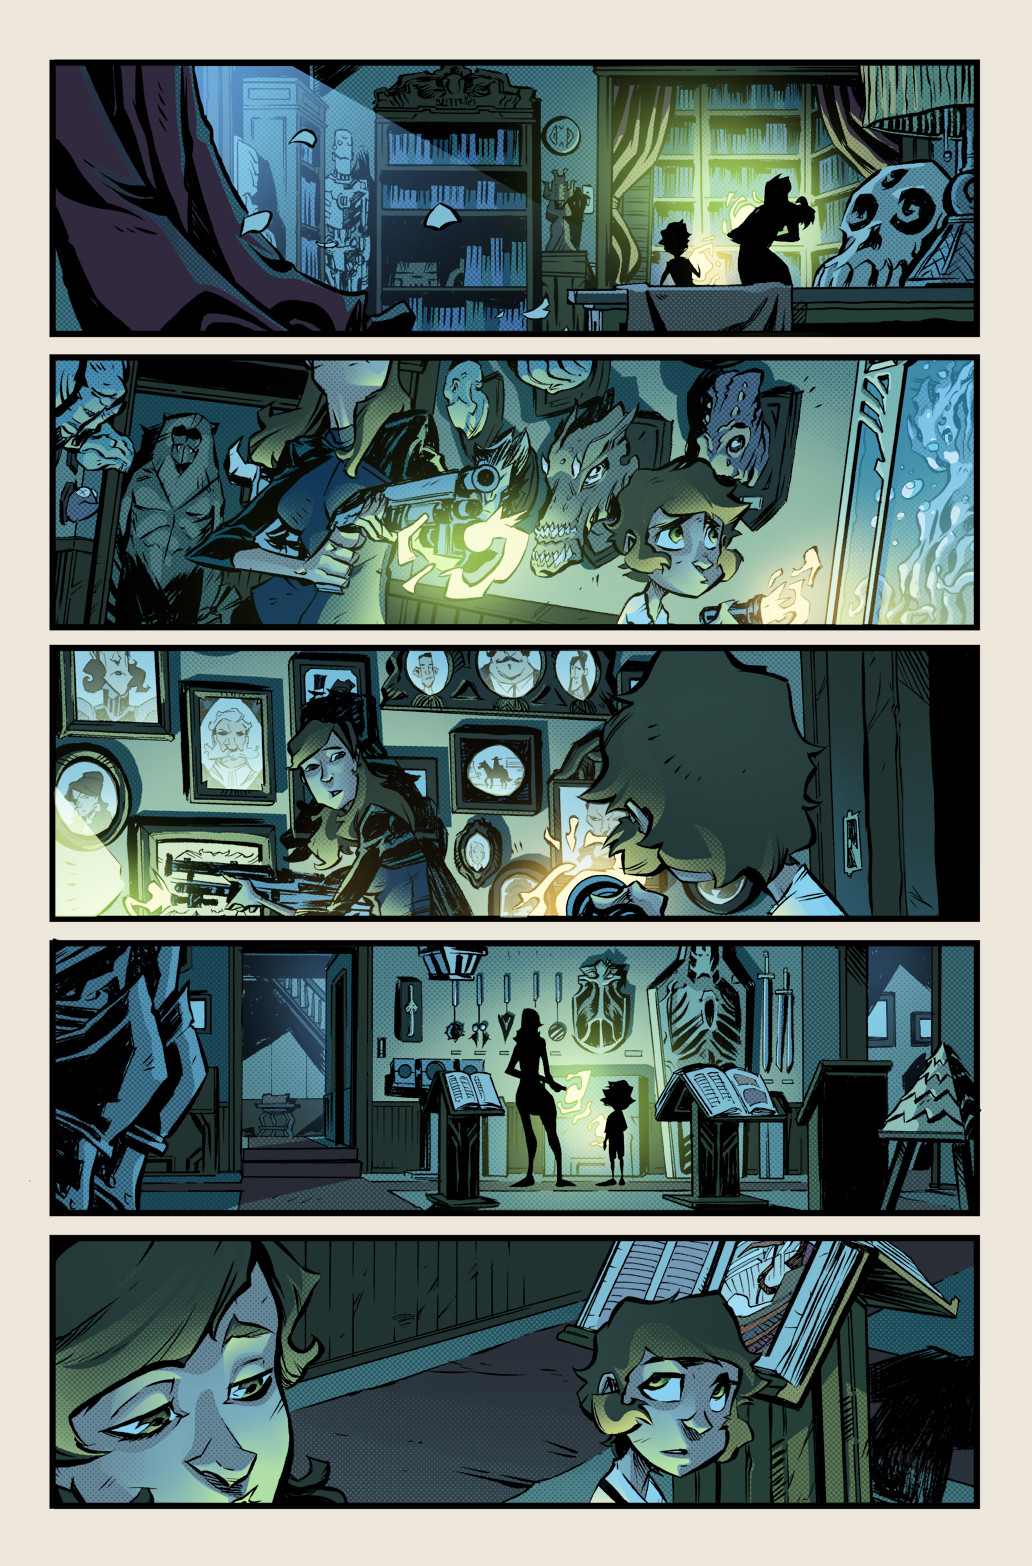 GONERS - #3, page 17